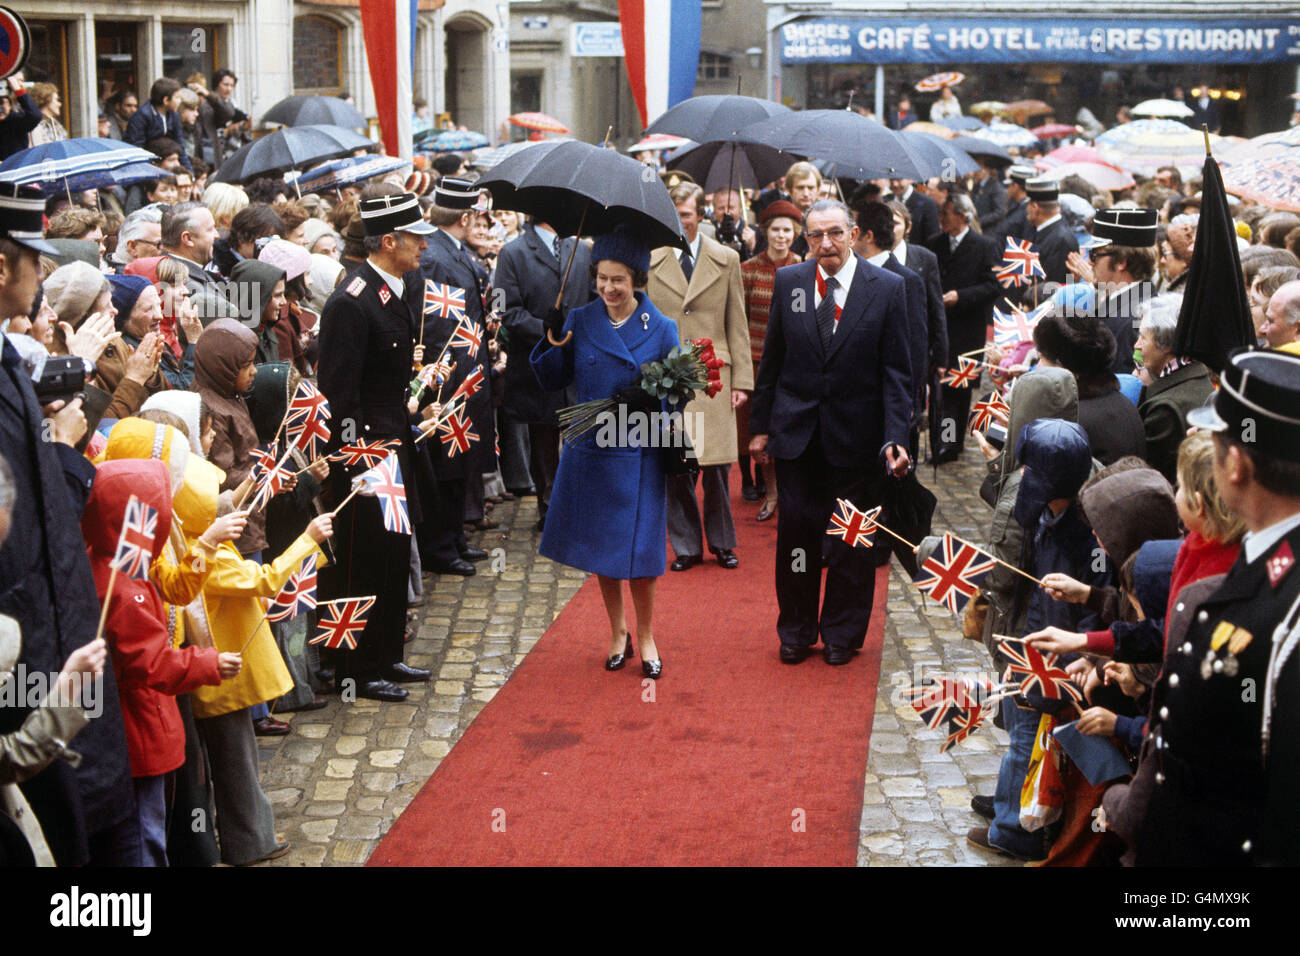 Royalty - Queen Elizabeth II State Visit to Luxembourg - Stock Image